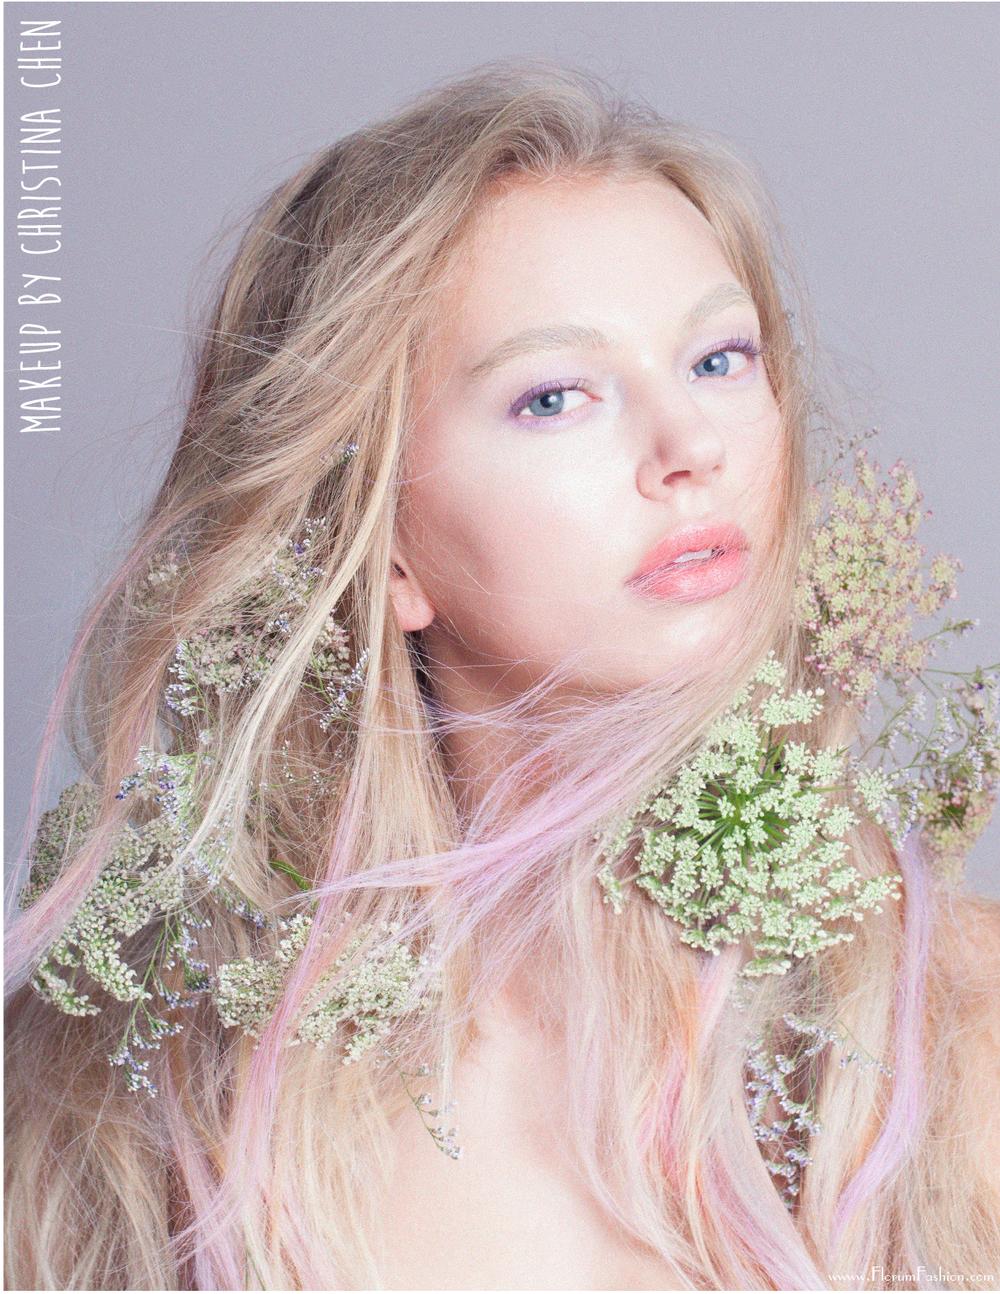 Bellezas Florales Webitorial - Florum Fashion Magazine - March 2016 - Natural Beauty - Vertical Image - organic Beauty page 3.png